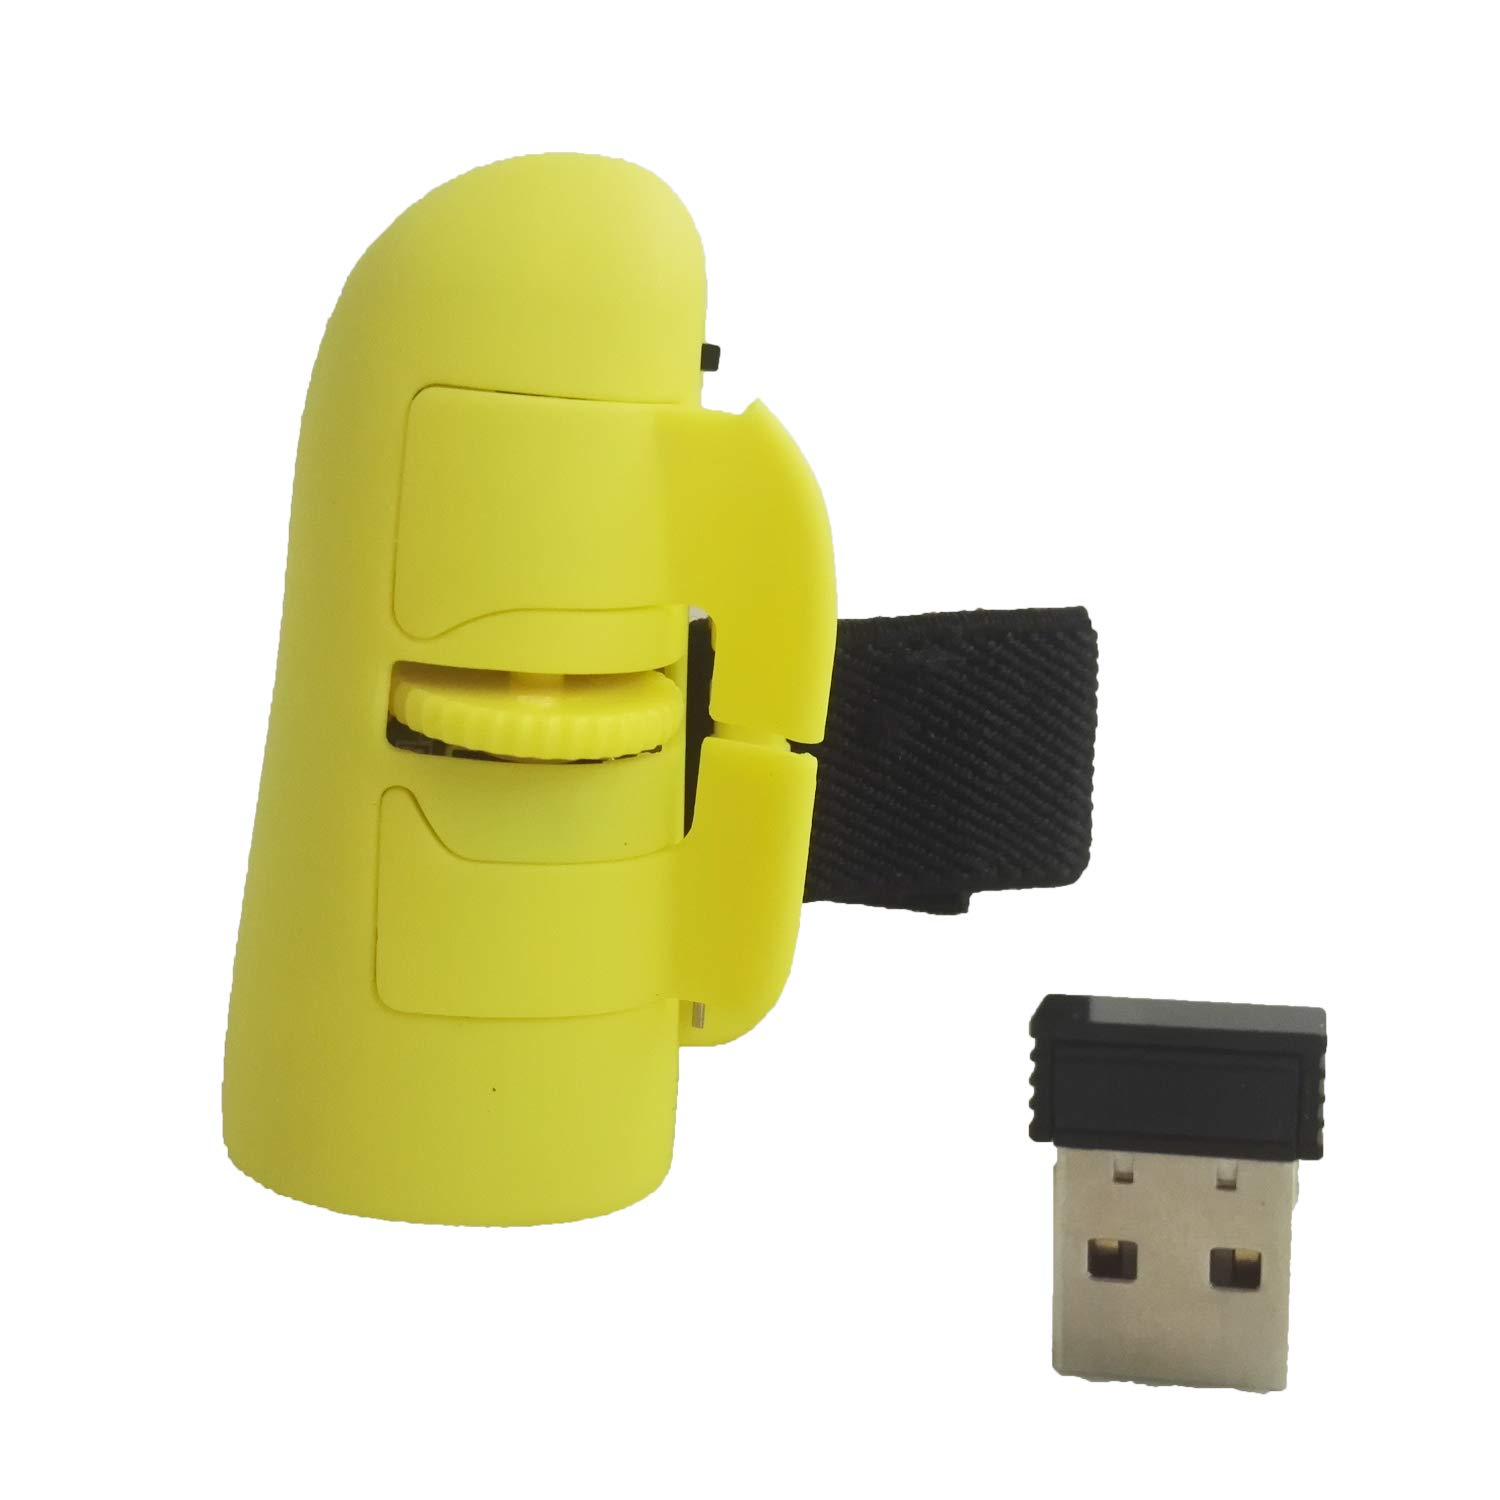 Yellow Goaup Wireless Finger Mouse USB 2.4GHz Gaming Mice for PC Computer Laptop